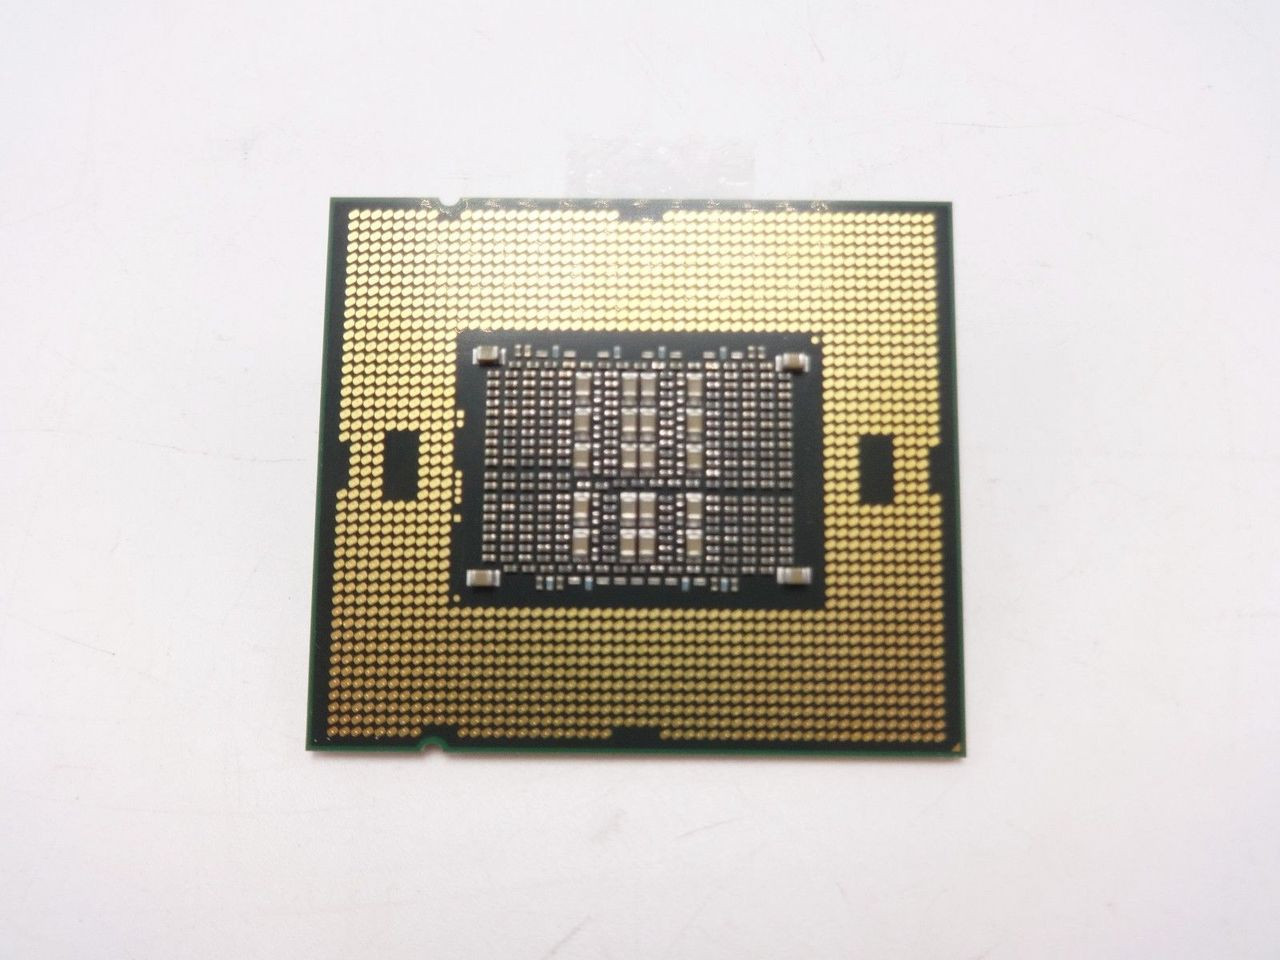 HP SLC3T INTEL E7-4870 2.4GHZ 30M 10C PROCESSOR 88Y5663